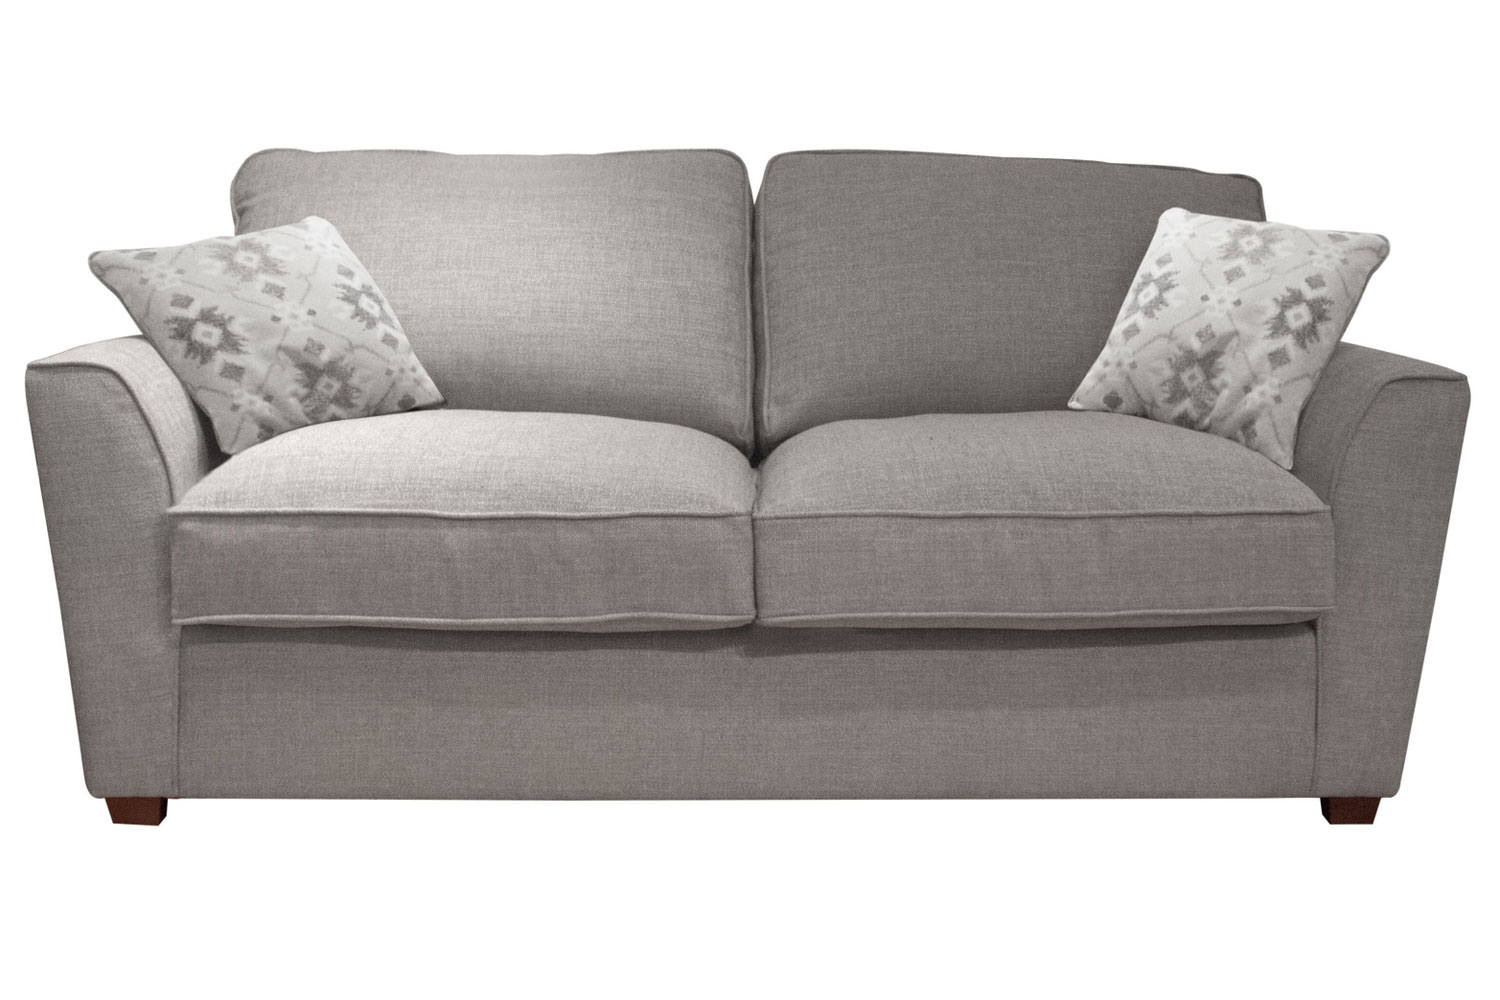 Tips for caring for the upholstery of sofas home for Furniture sofas and couches